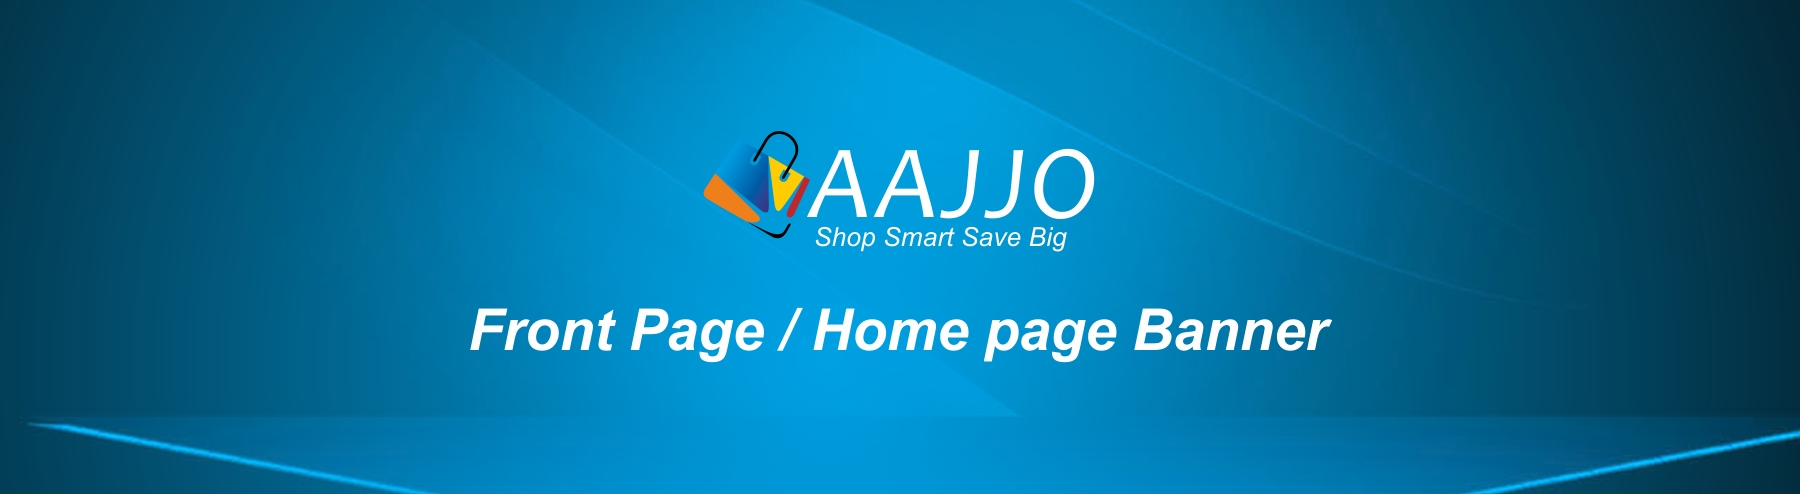 Category Banner for advertisement on home page